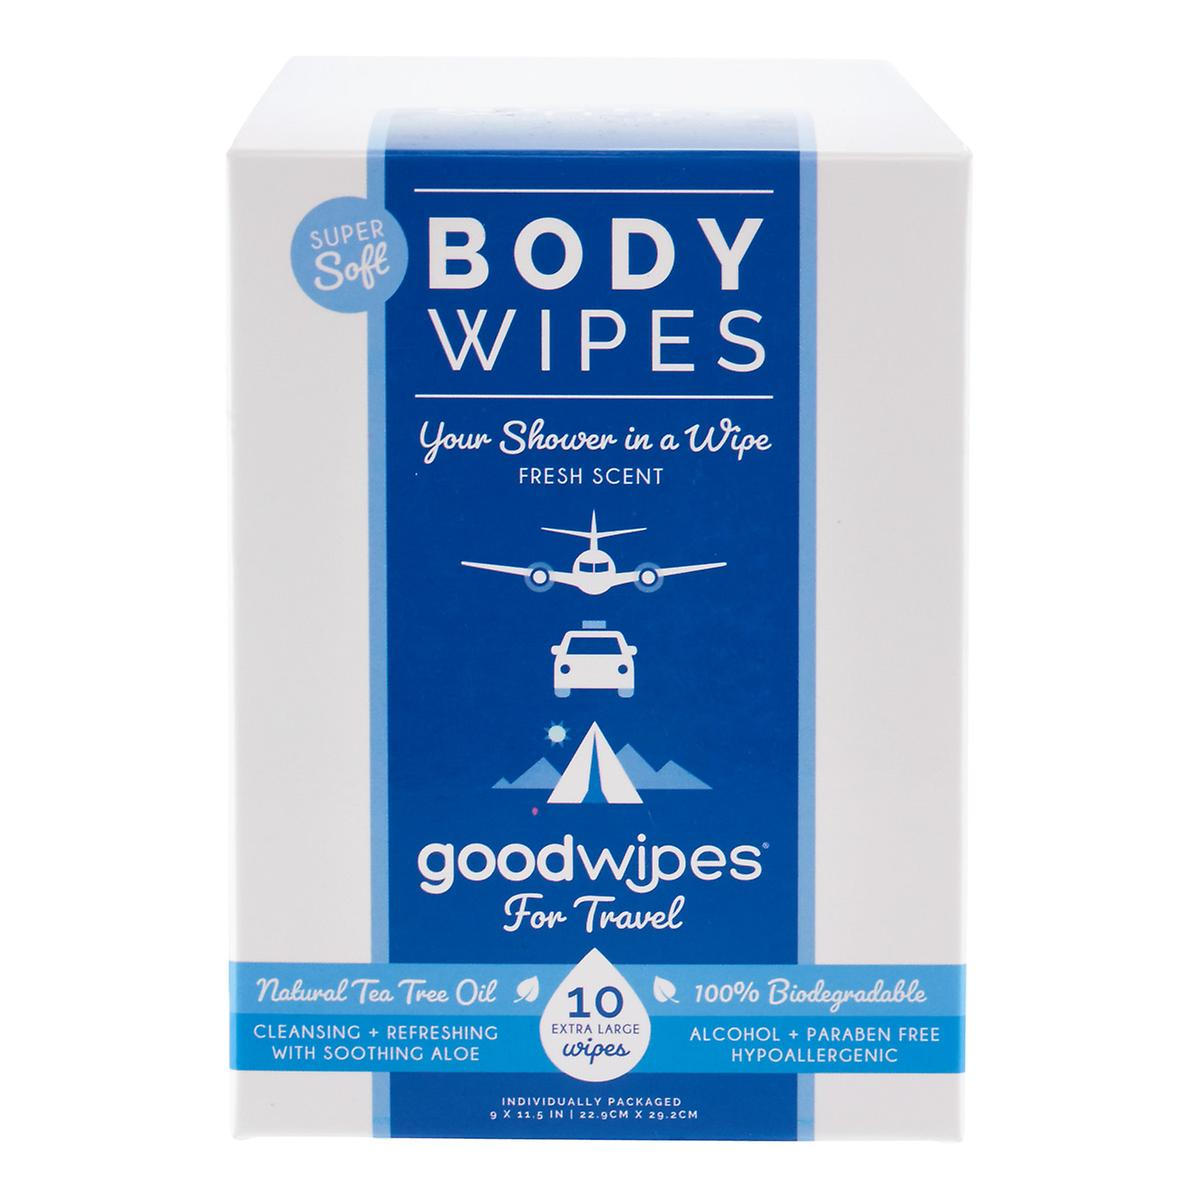 Goodwipes Deodorizing Body Wipes